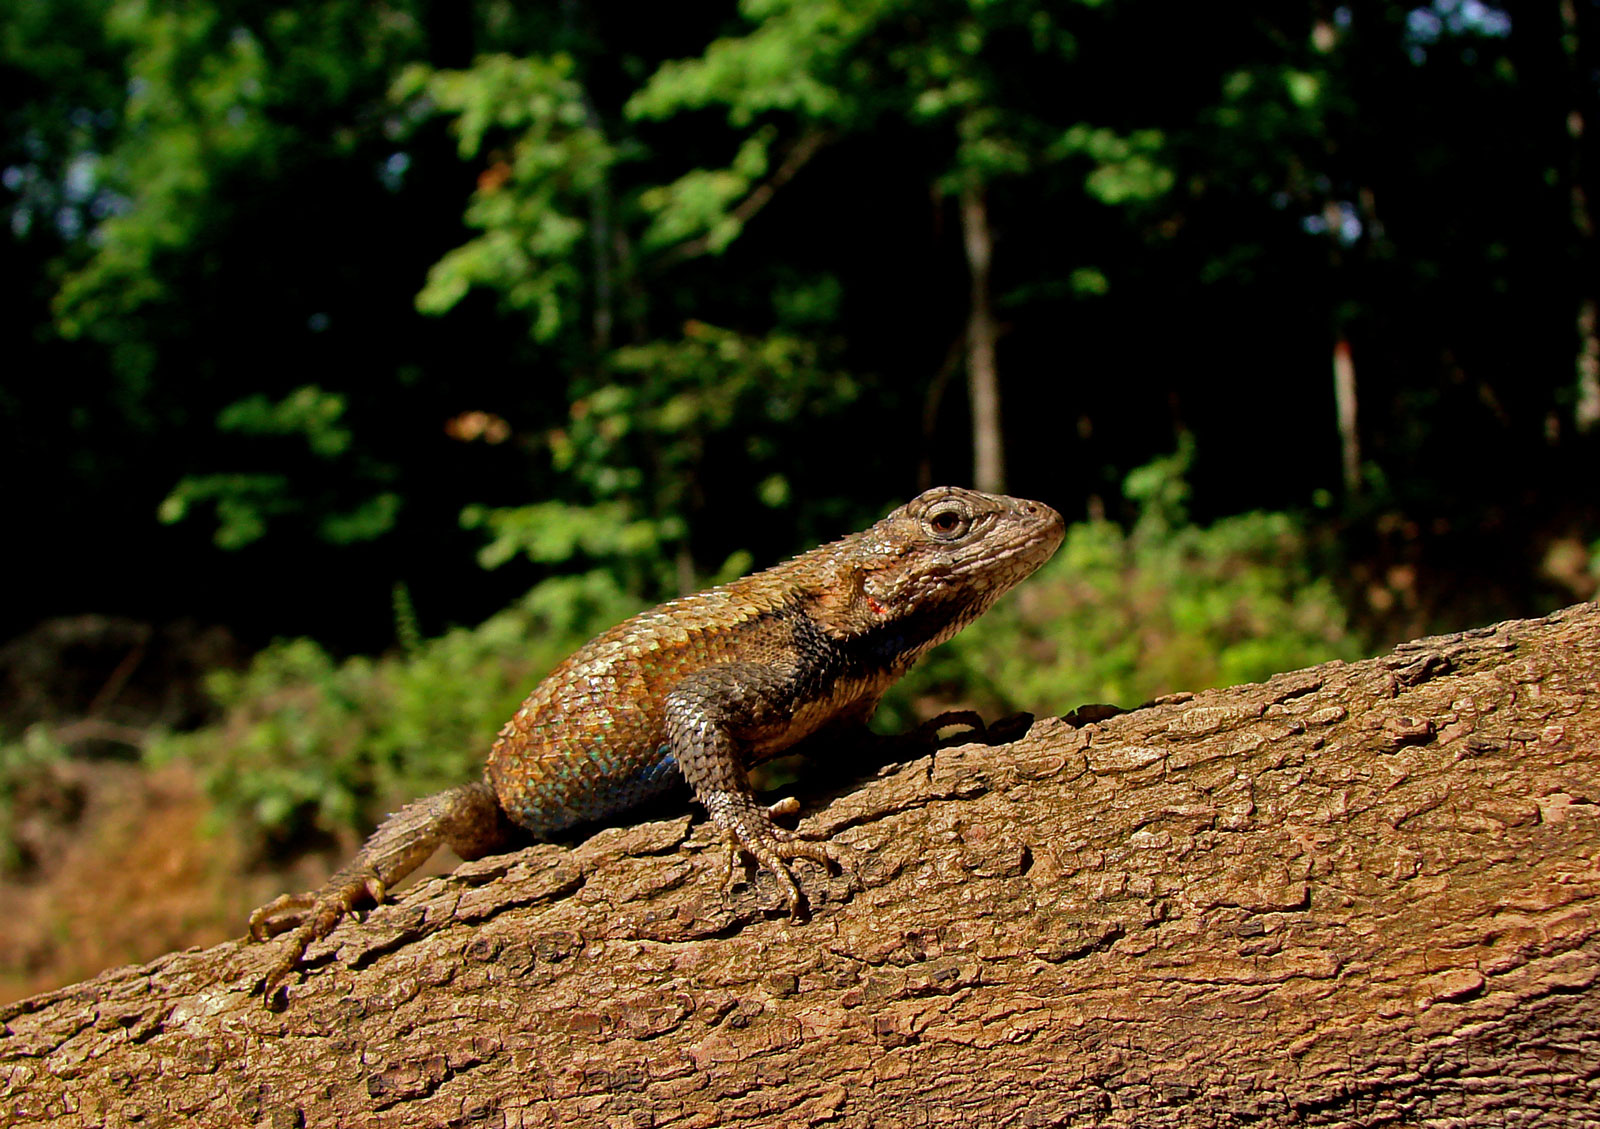 Lizards increasingly rely on camouflage to avoid predators as you move southward across their range, but the presence of invasive fire ants reverses this pattern. Credit: Langkilde Lab, Penn State